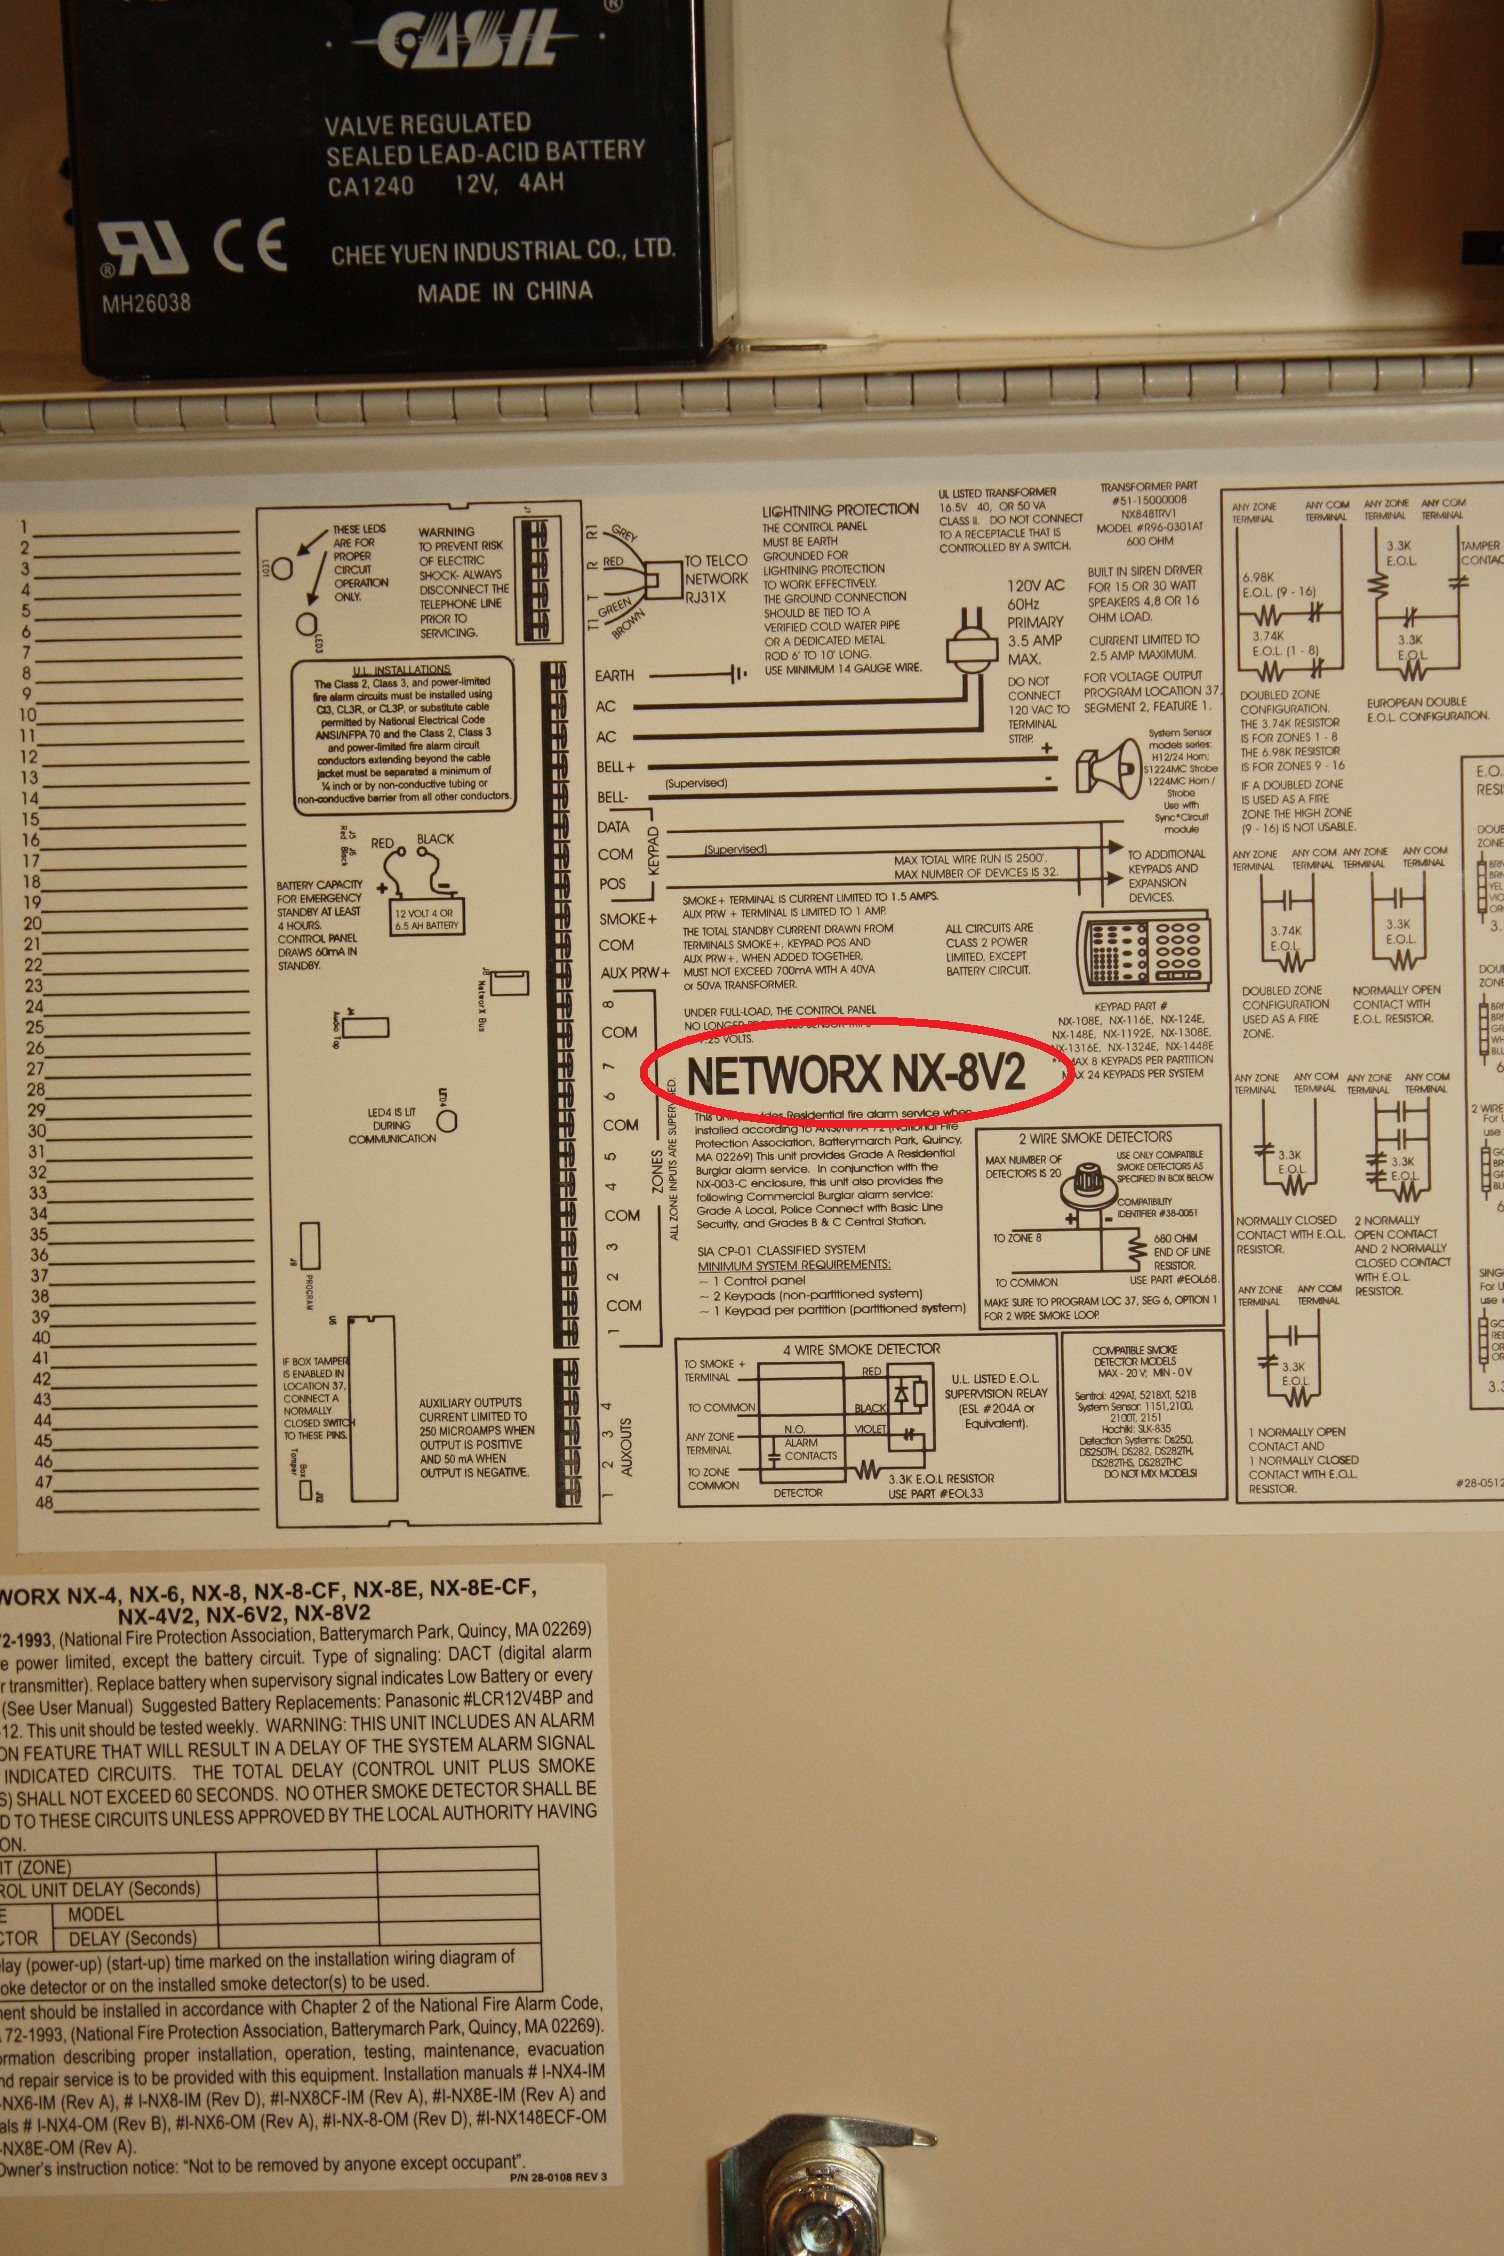 Hookup panel diagram for the Caddex NX 1448e Fixed English alarm system showing the location of the serial number - NCA Alarms Nashville TN